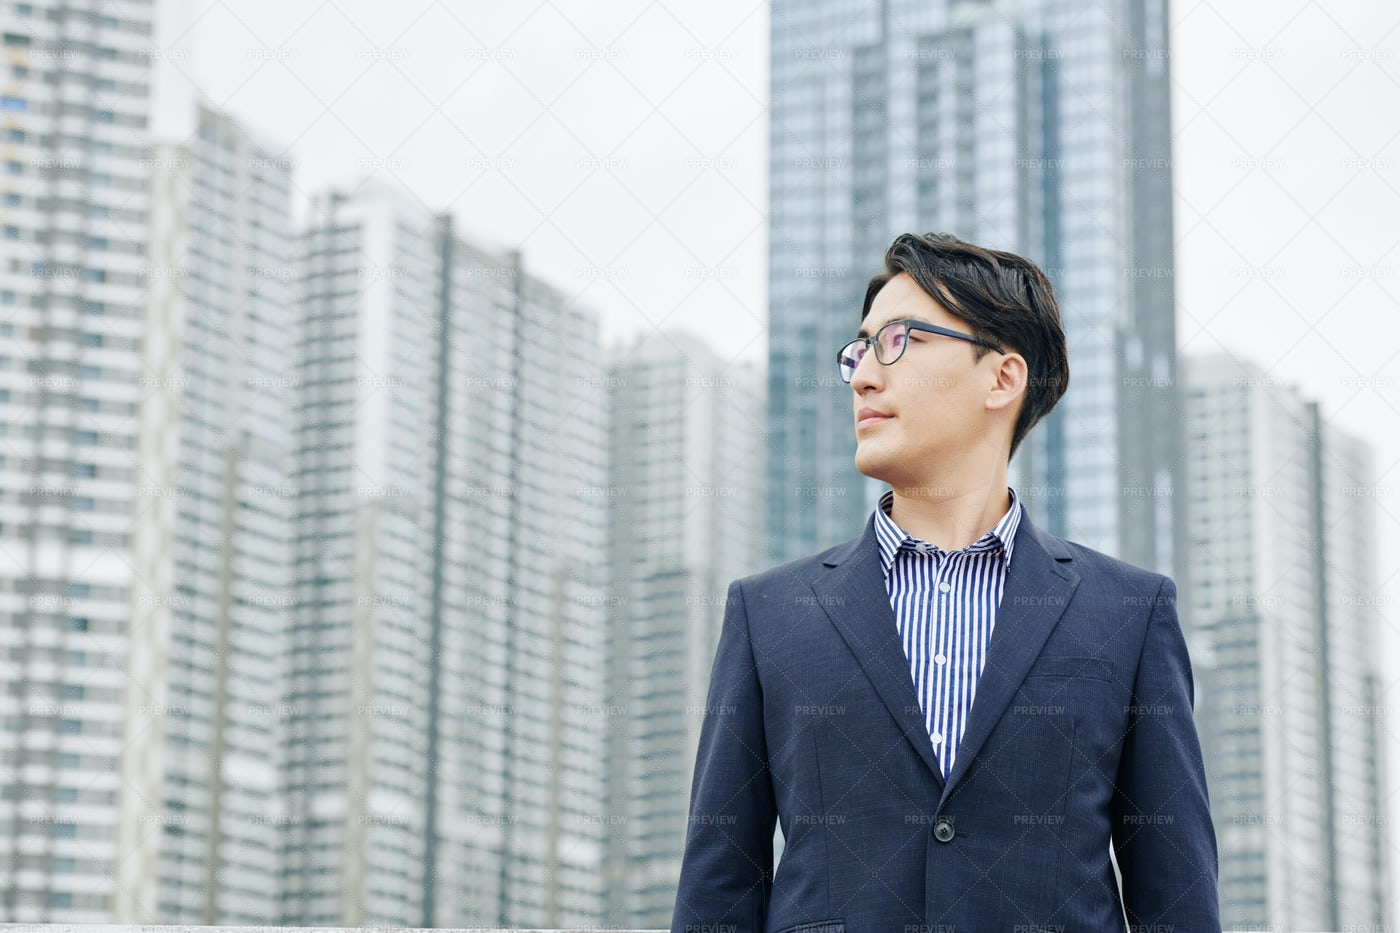 Businessman Looking At New District: Stock Photos